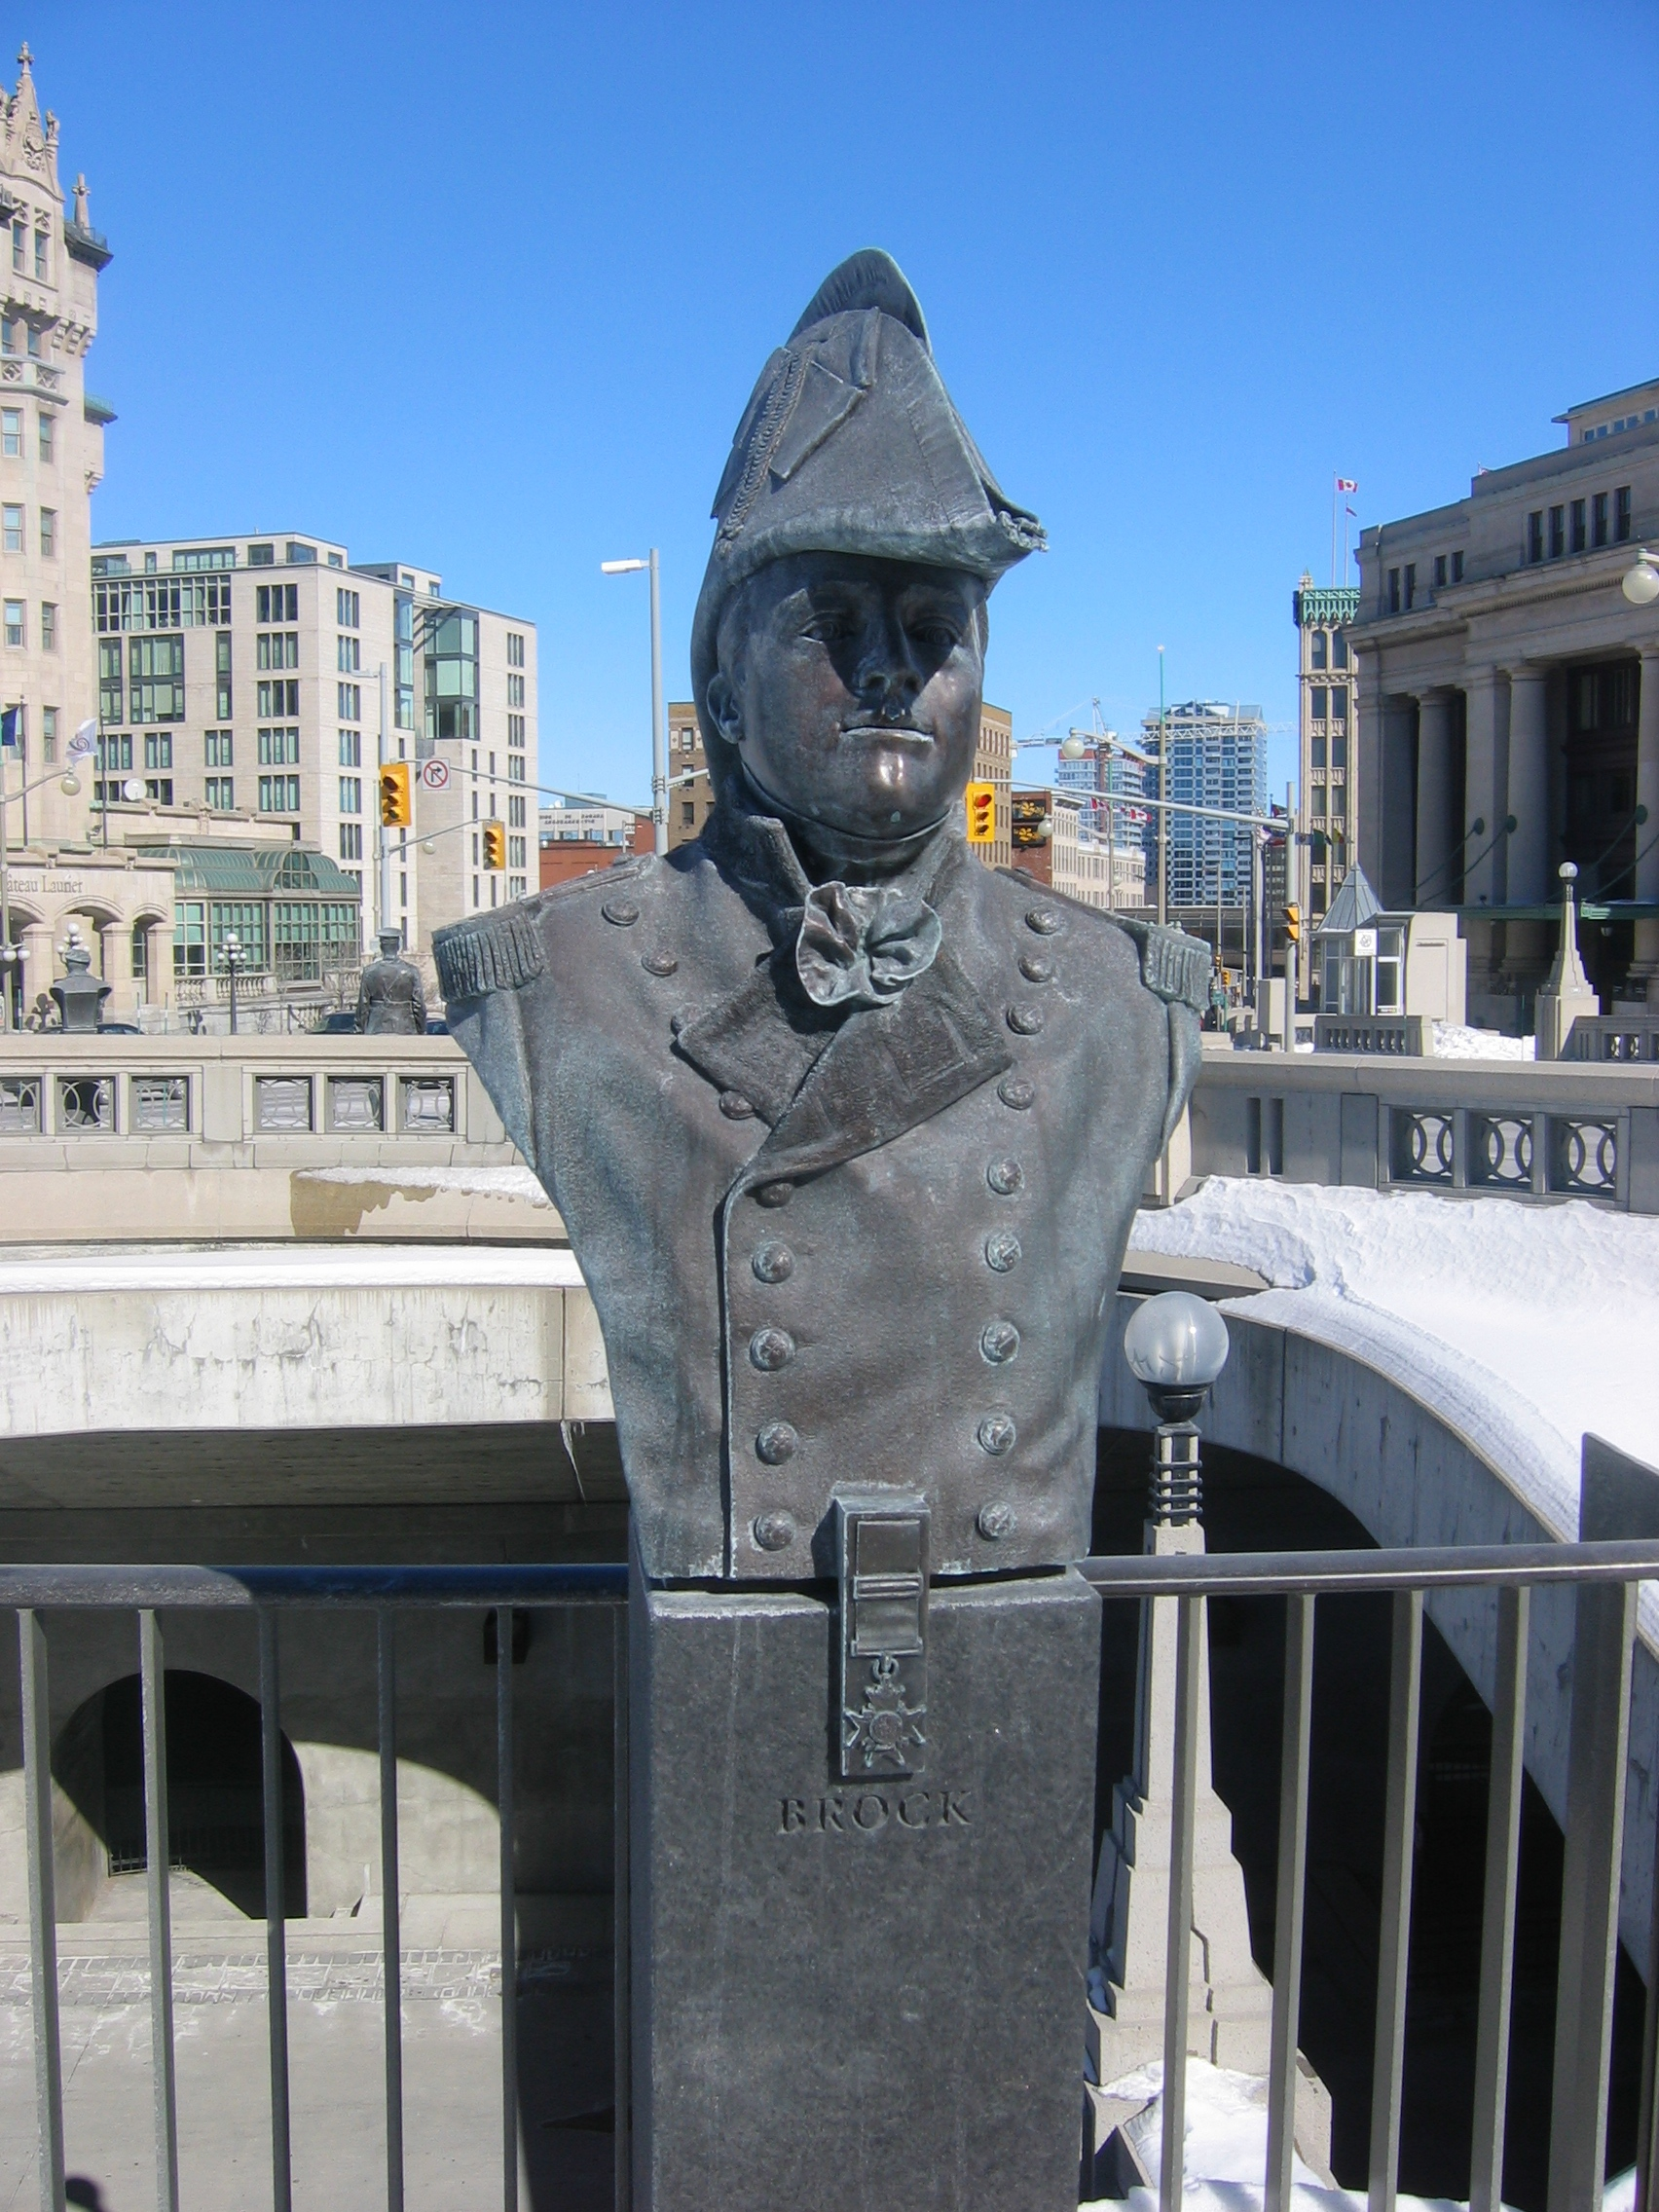 Bust of Sir Isaac Brock in at Valiants Memorial in Ottawa